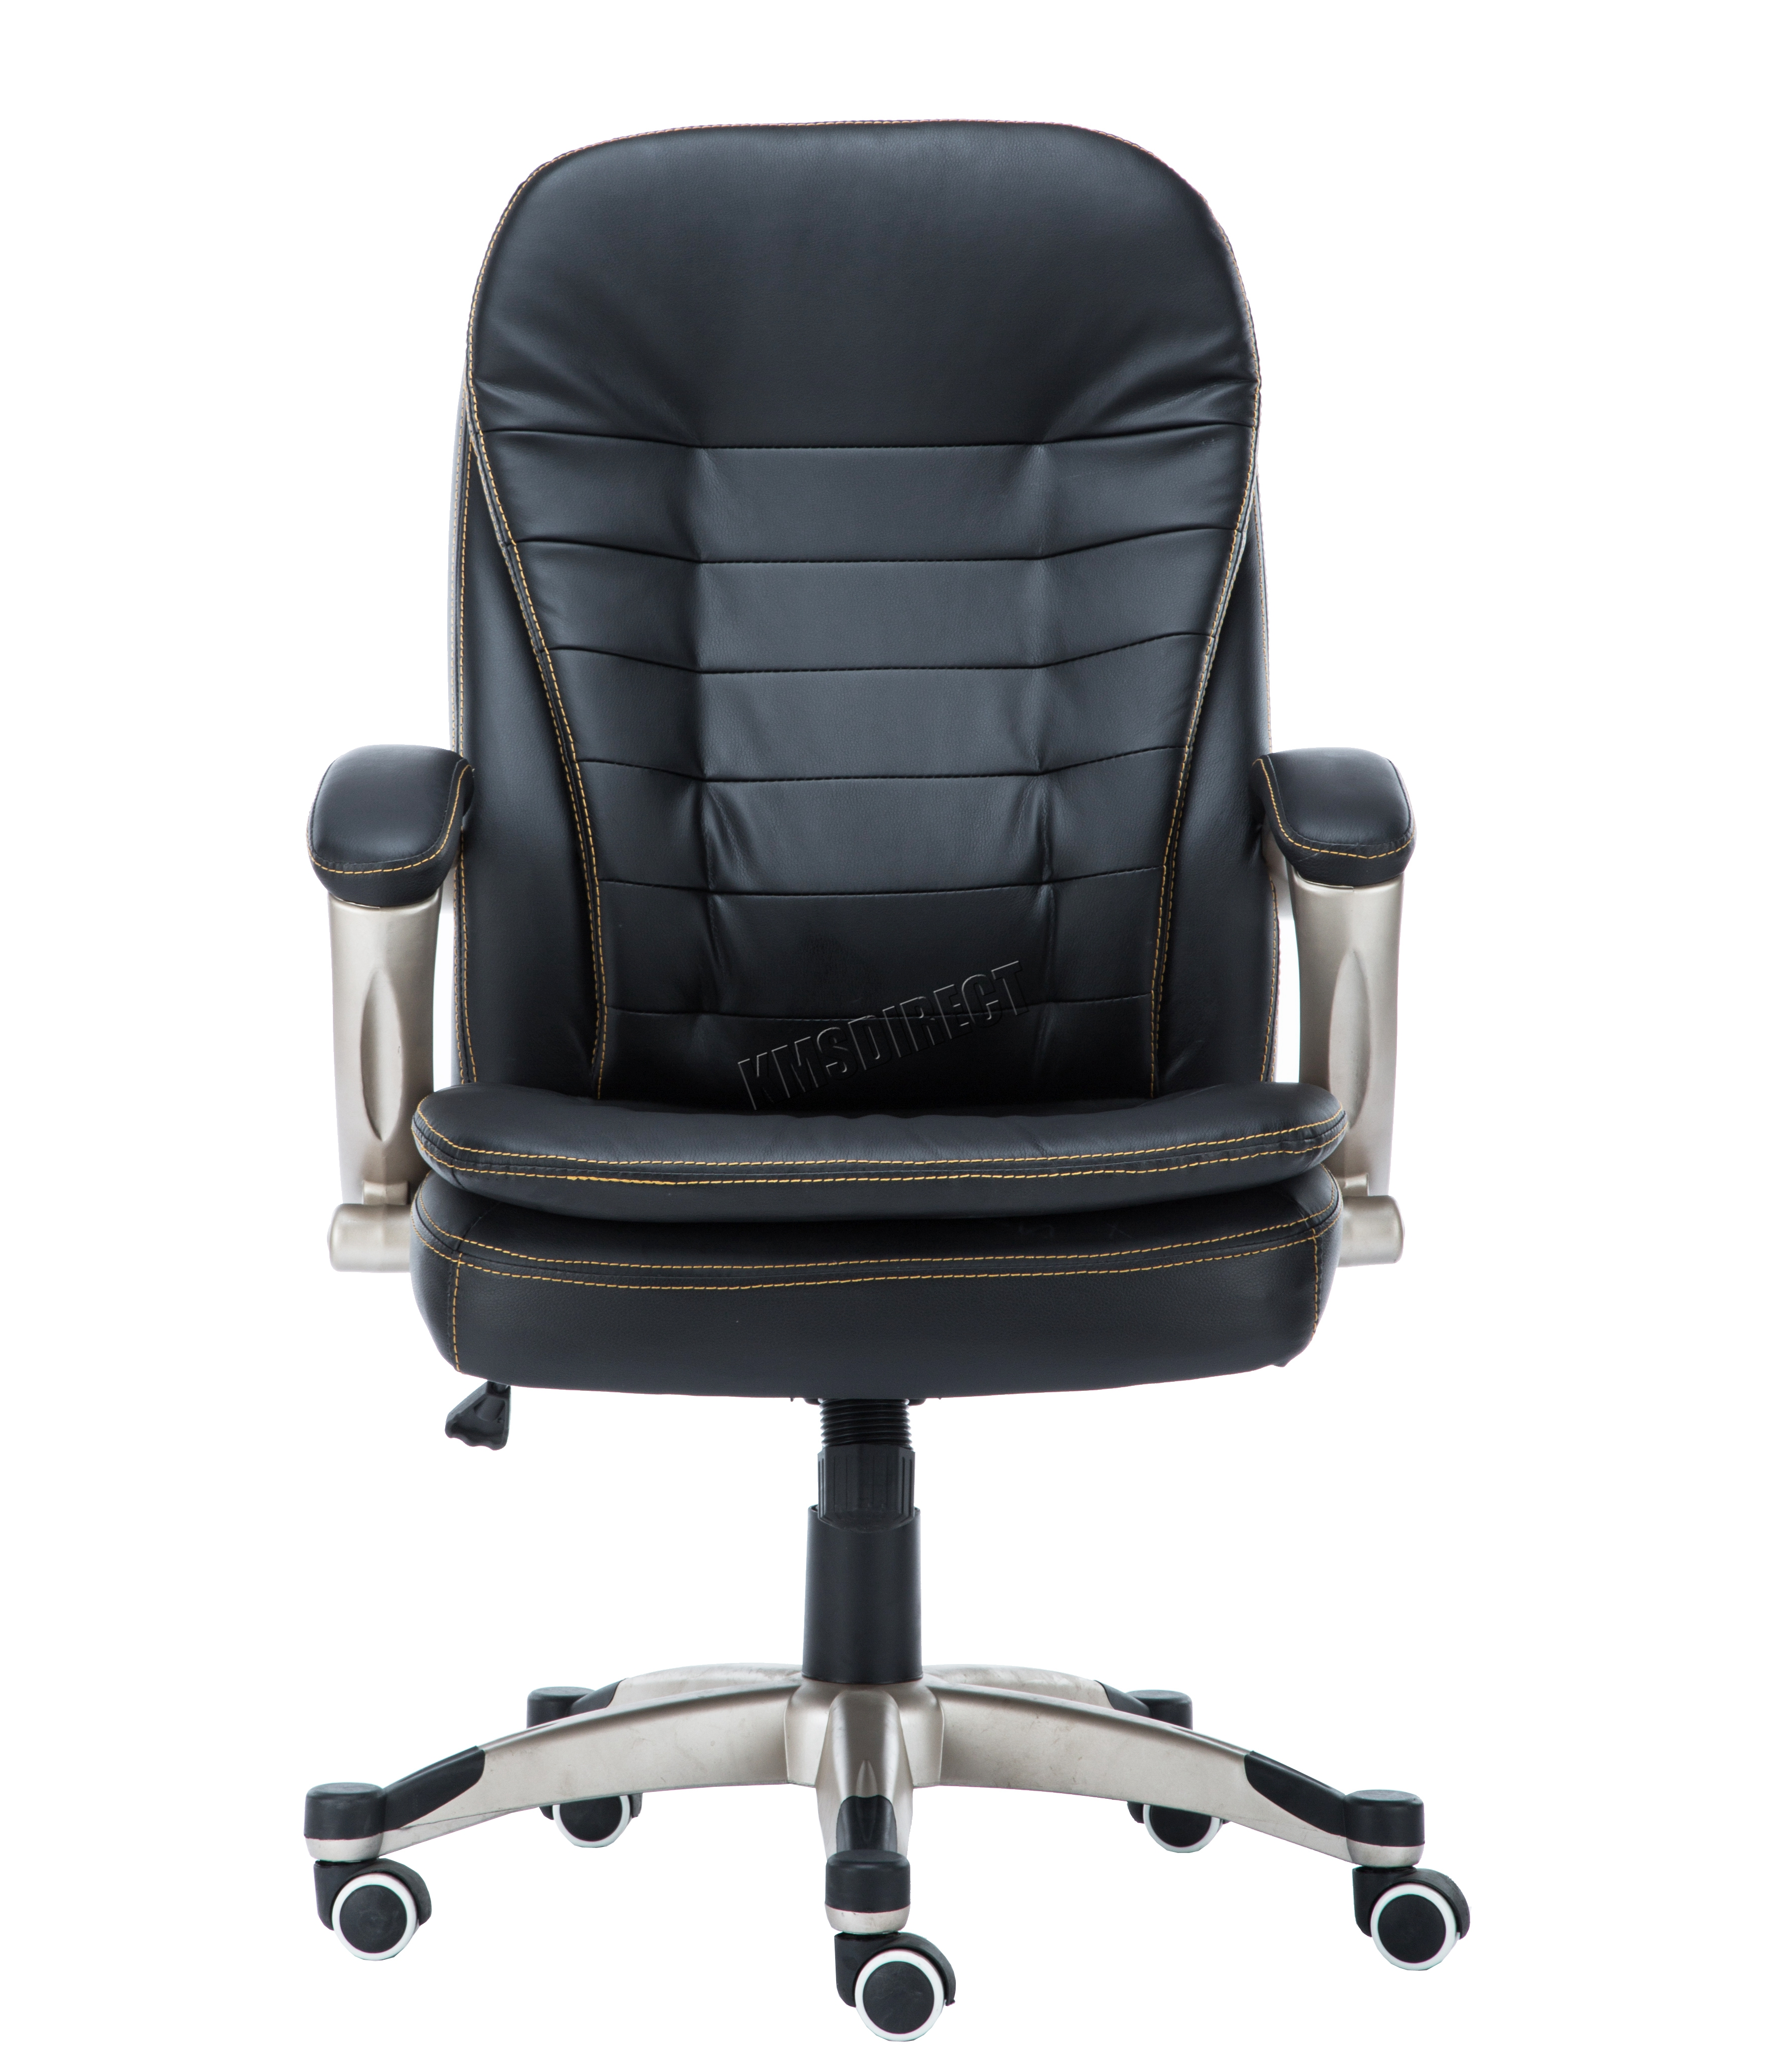 home office chair no wheels uk the fully reclinable with zero gravity technology westwood computer executive pu leather swivel